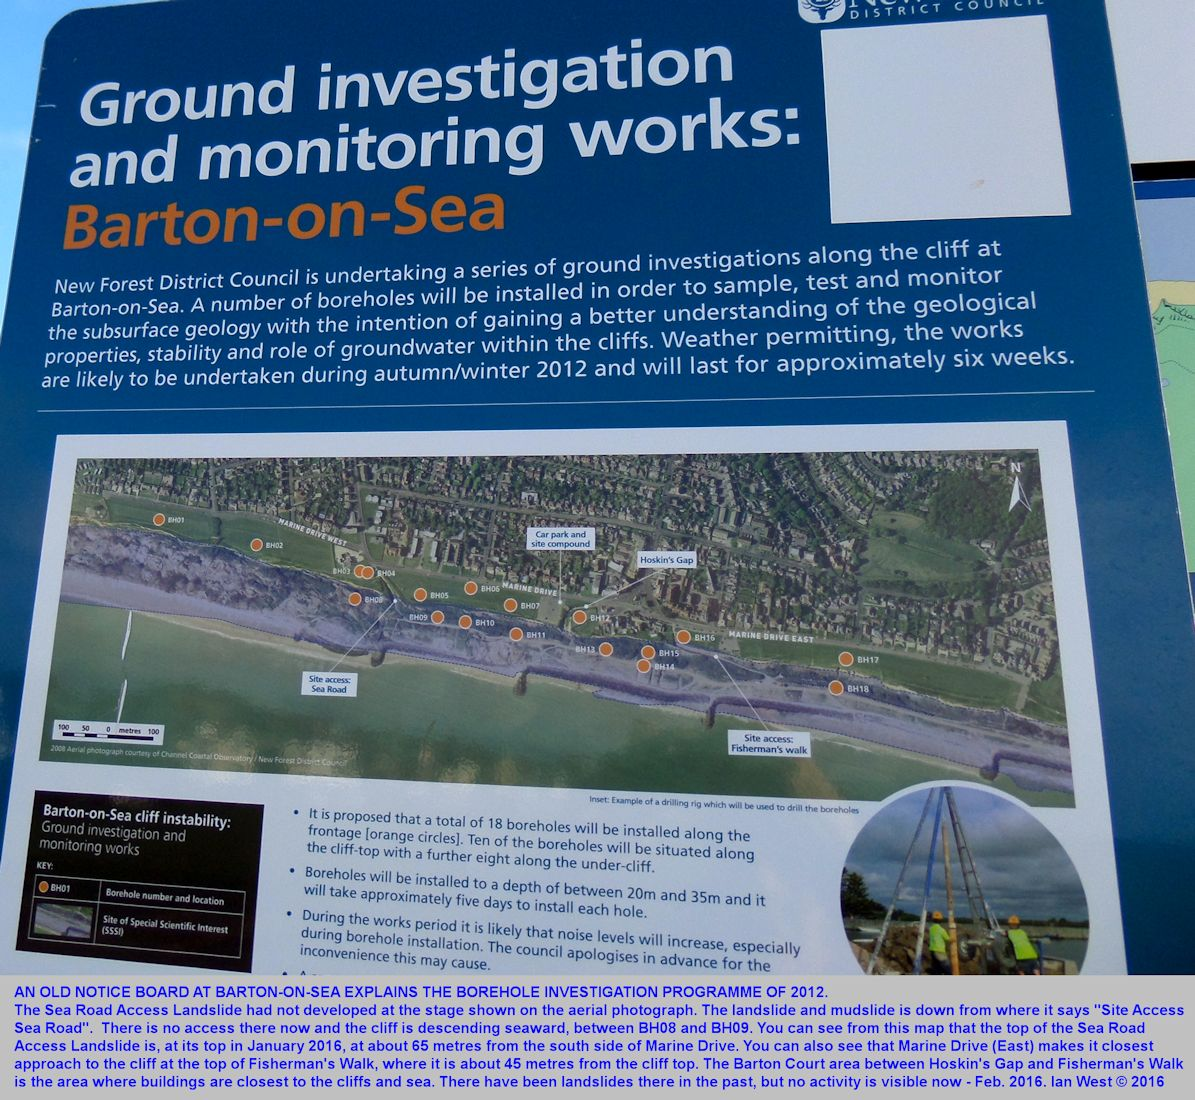 An old notice board at Barton-on-Sea, explaining the borehole investigation programme that was planned for the autumn and winter of 2012, and has now taken place